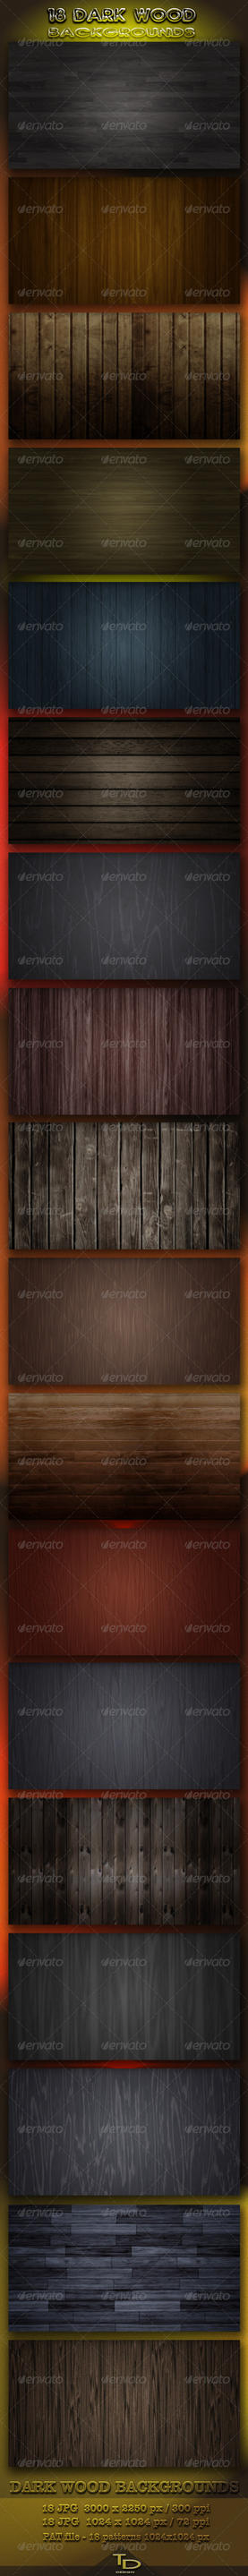 18 Dark Wood Backgrounds by AzureRayArt